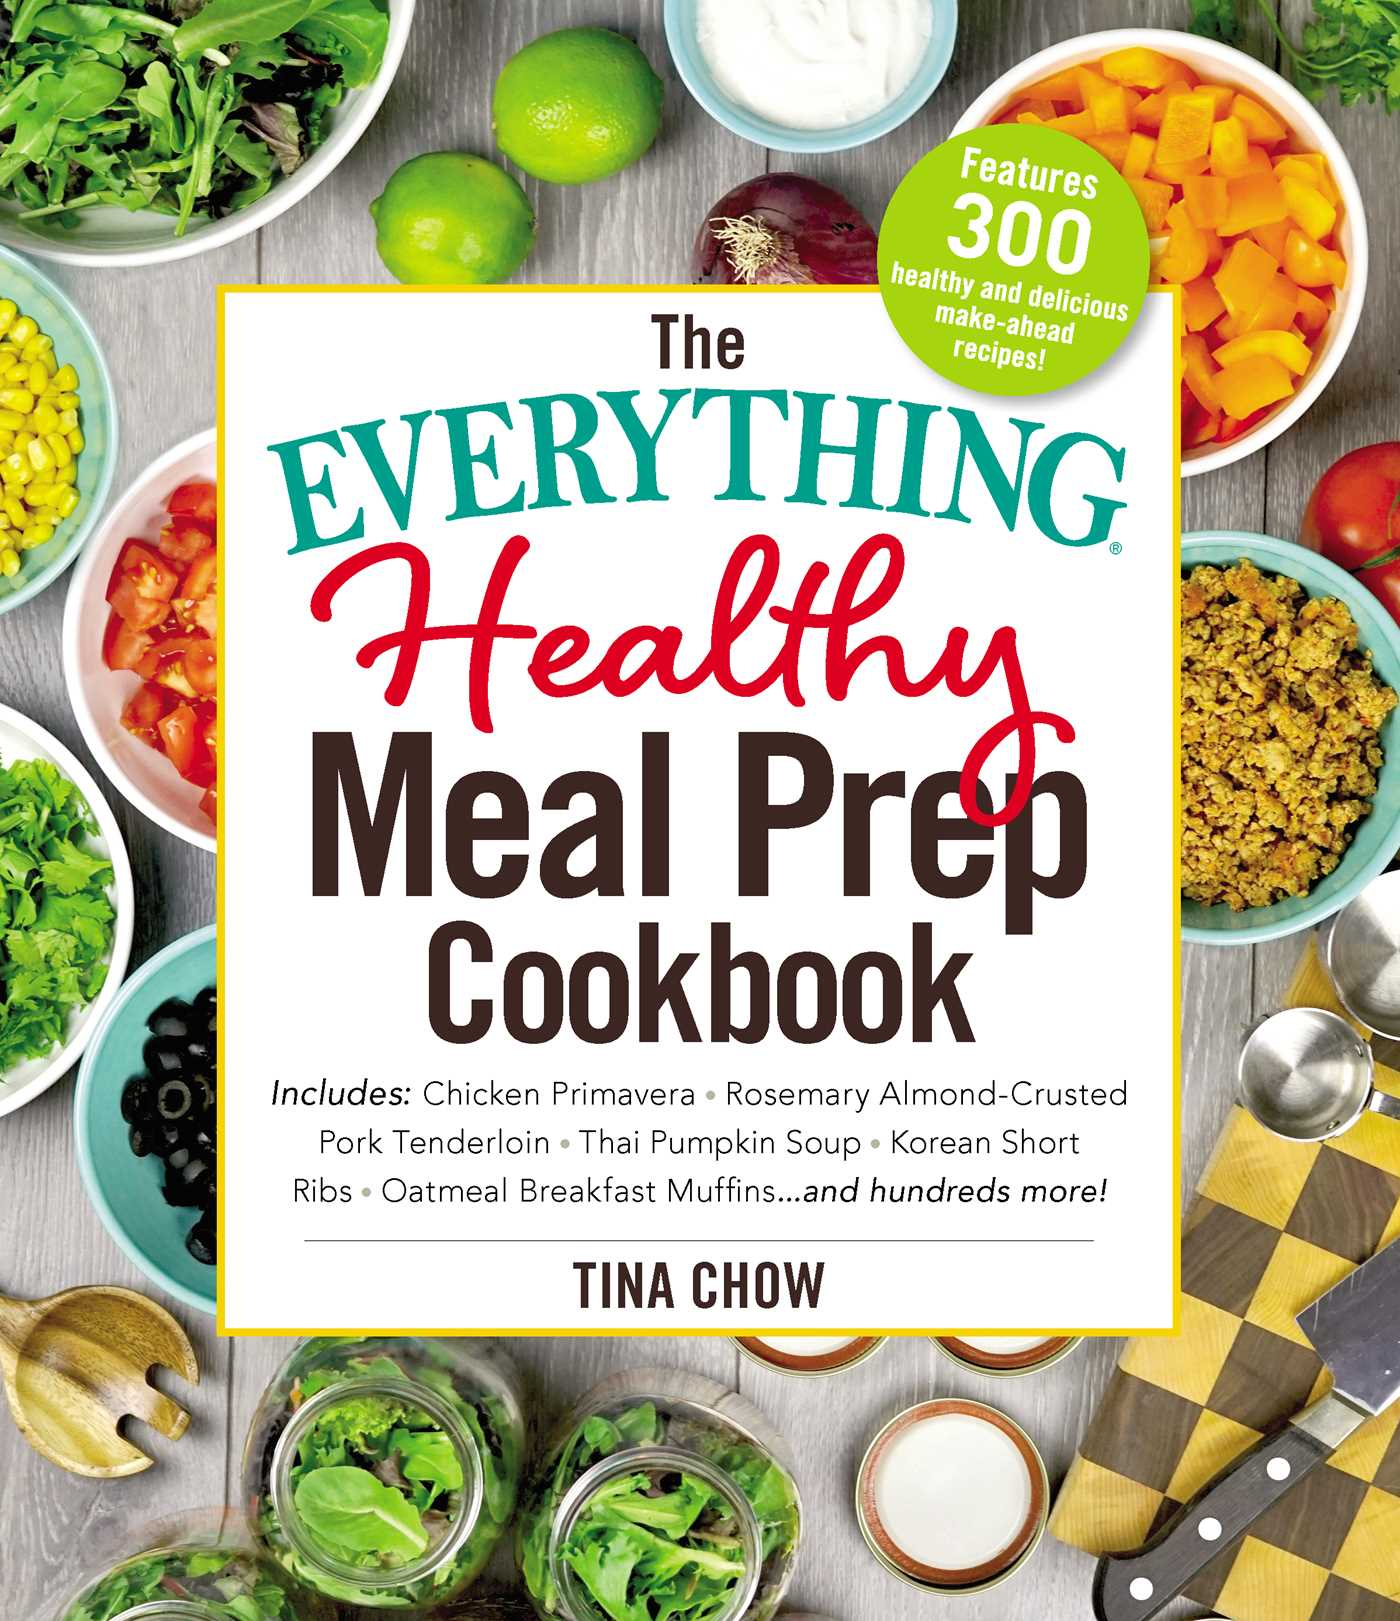 The everything healthy meal prep cookbook 9781507205976 hr